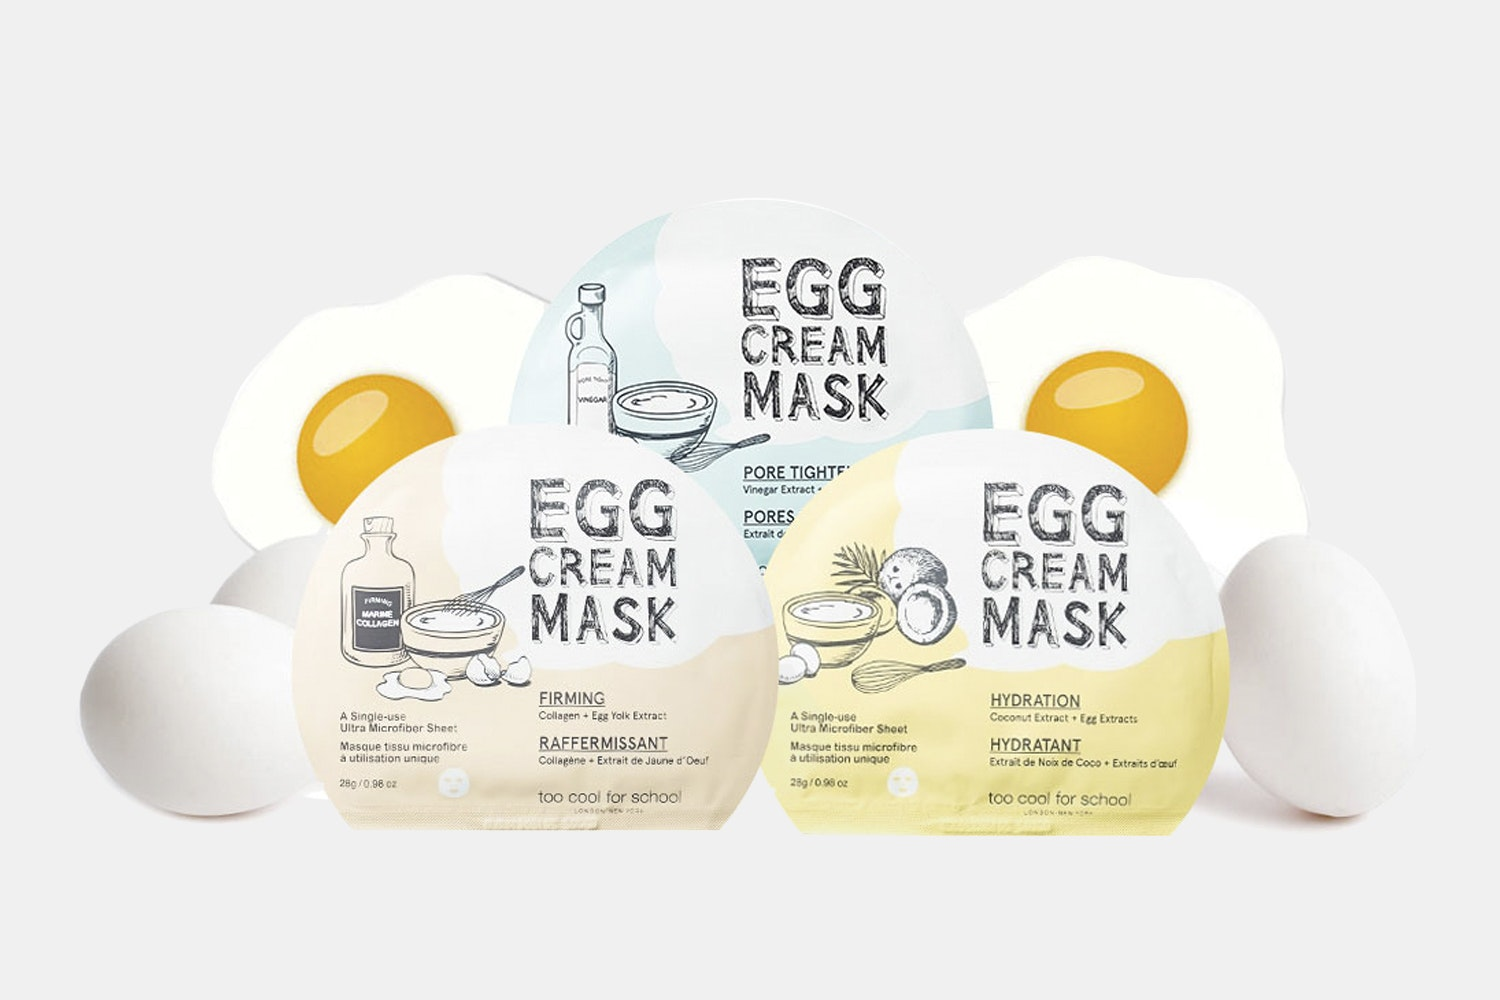 Too Cool for School Egg Cream Masks (5-Pack)